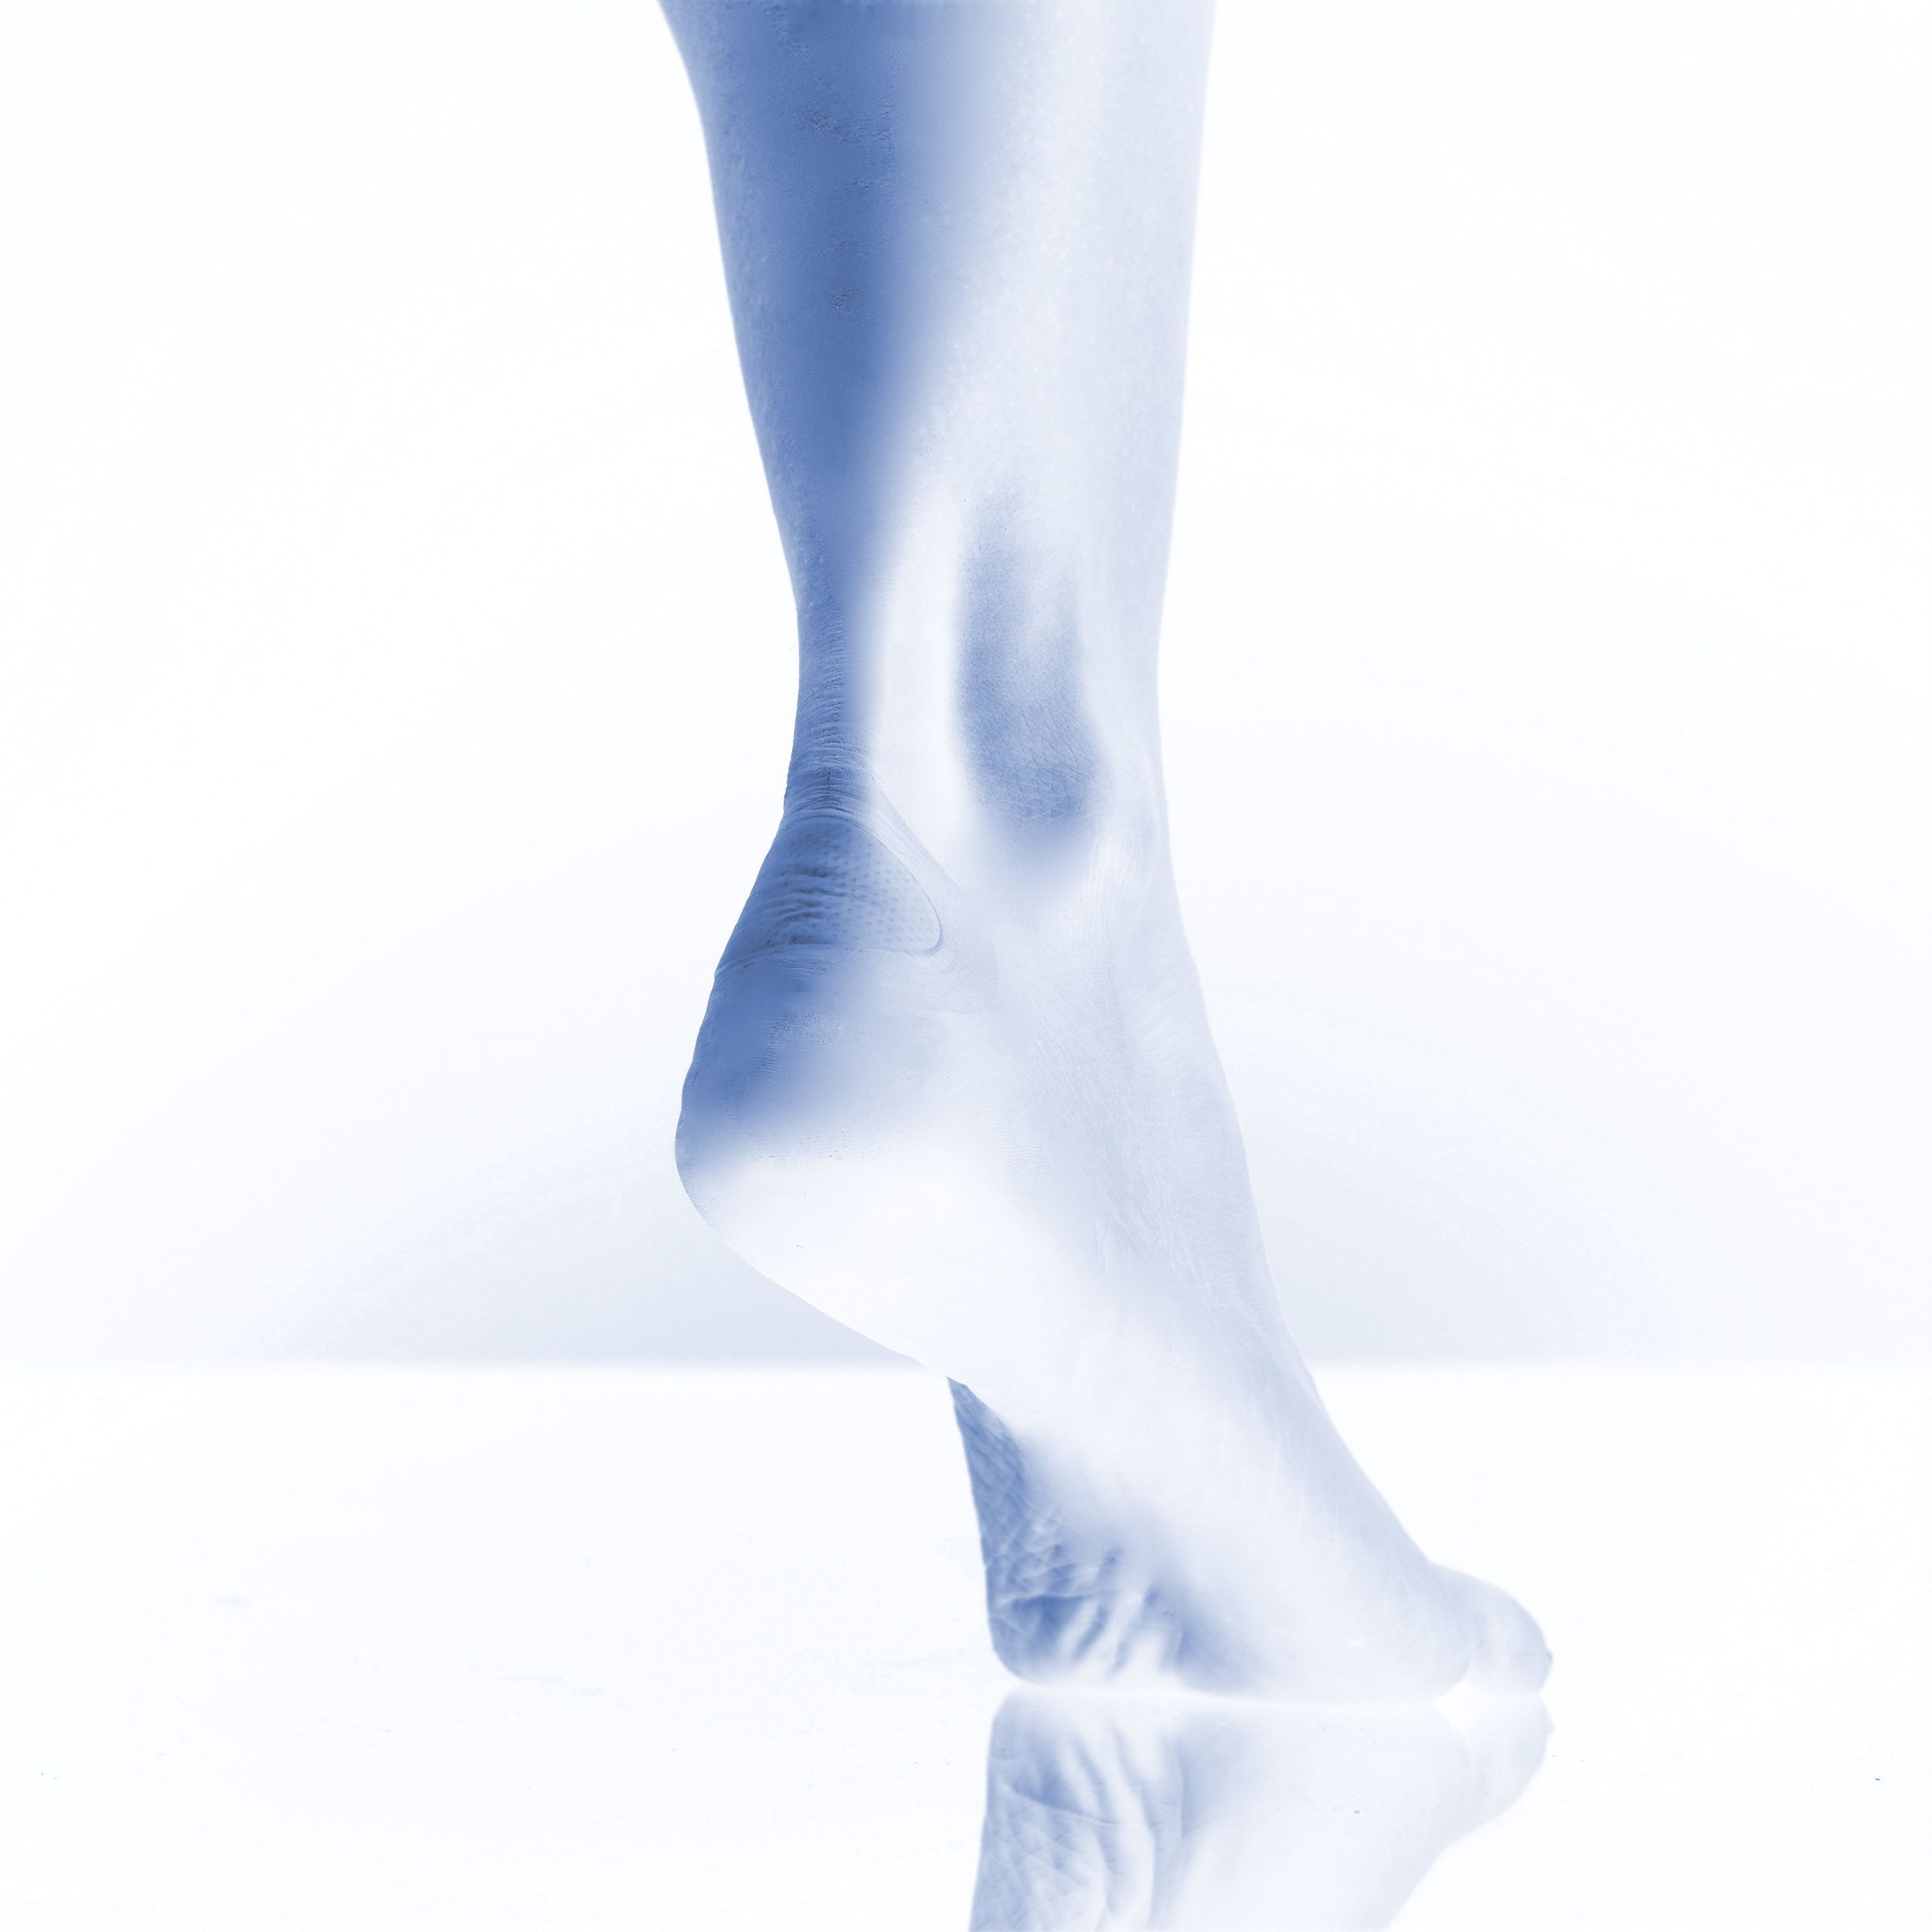 transparent, cushioning plasters for  footcare